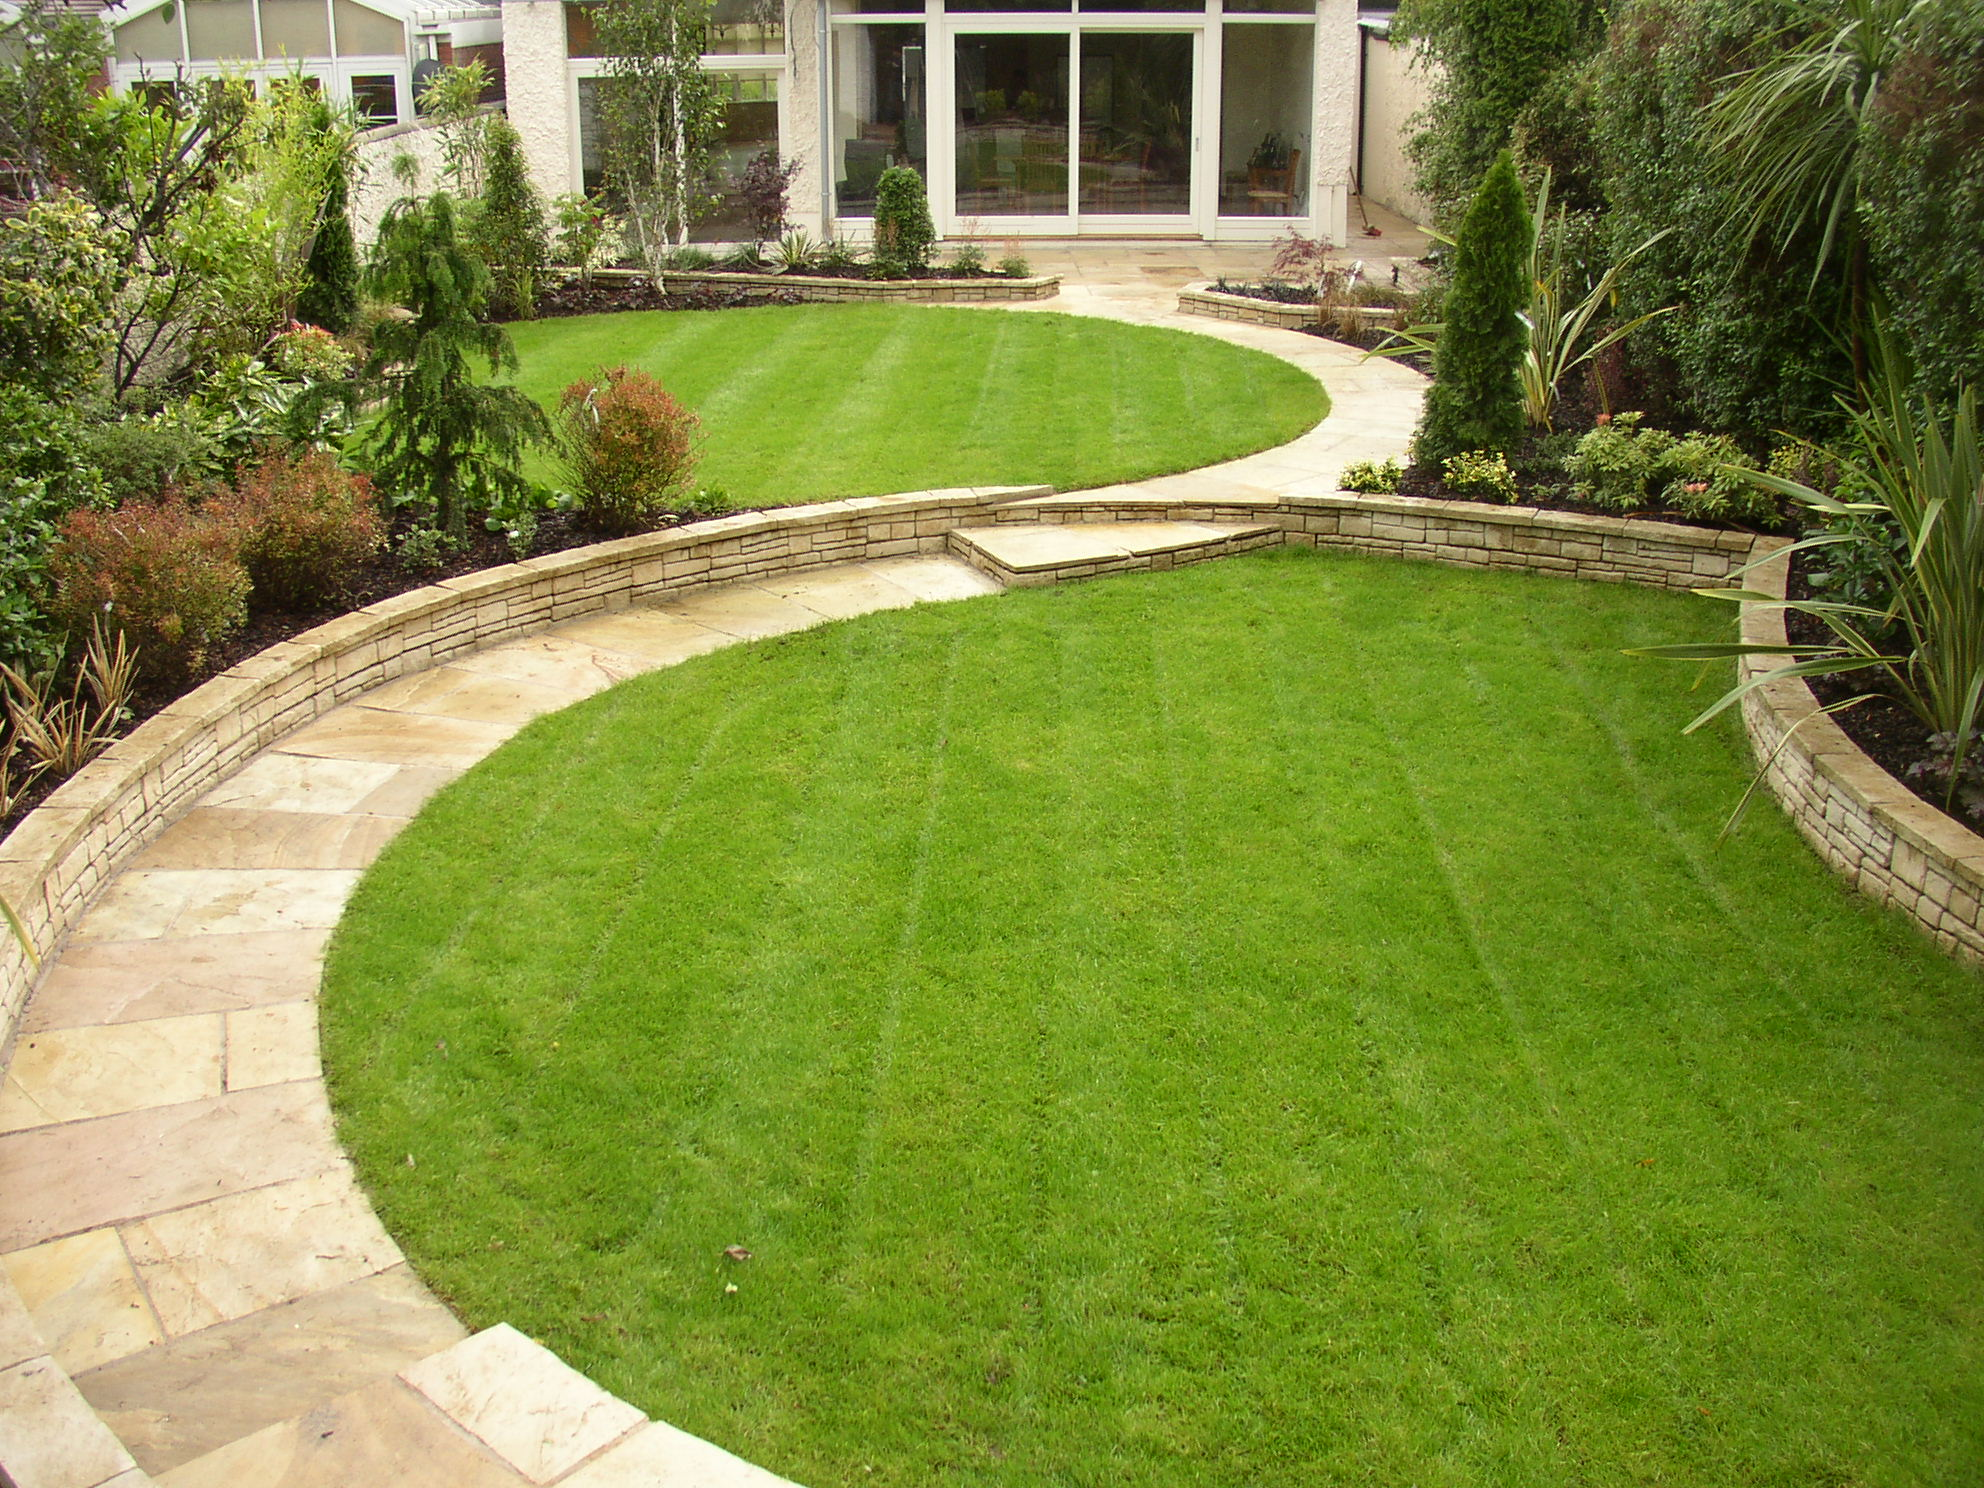 Landscaping Grass Roll : Services landscaping outside options